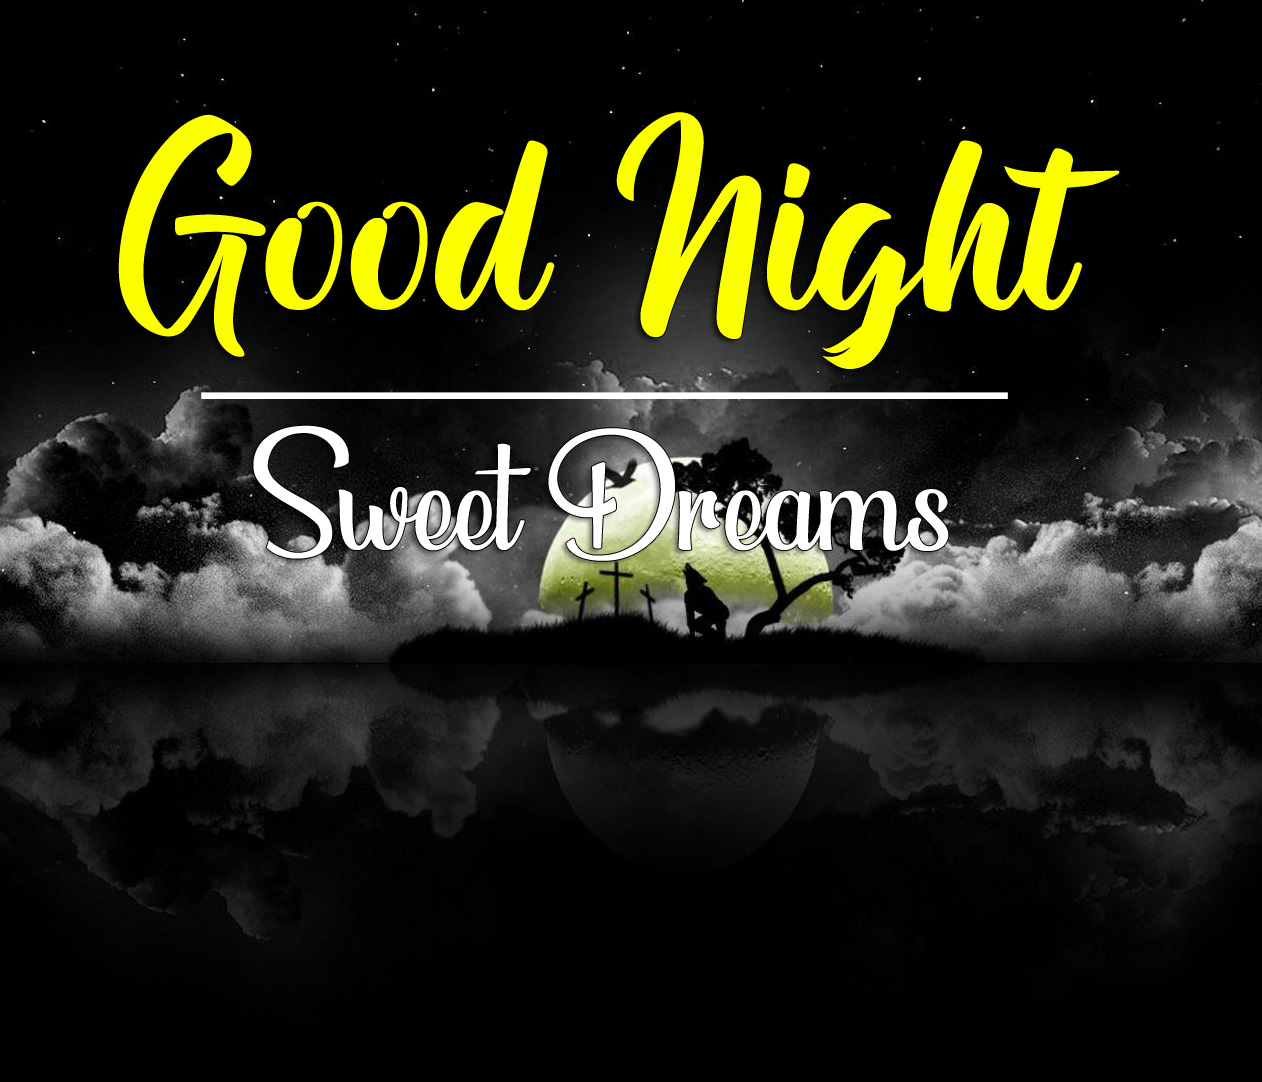 Best Quality Free 4k Good Night Images Pics Download 2